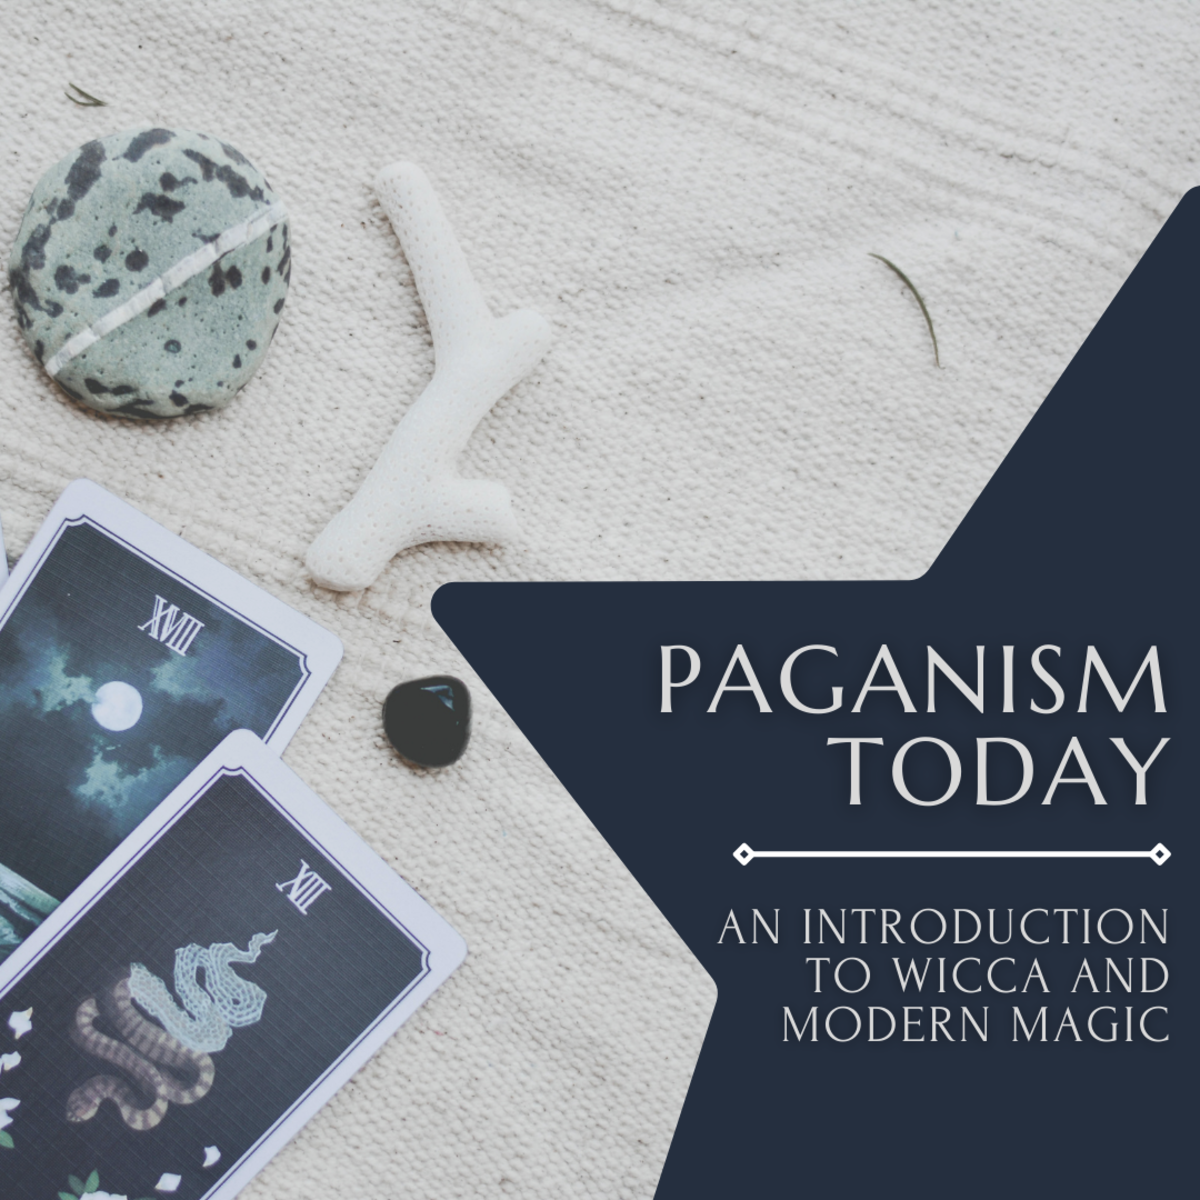 This article will take a deeper look at wicca and other modern-day magic forms in contemporary society.